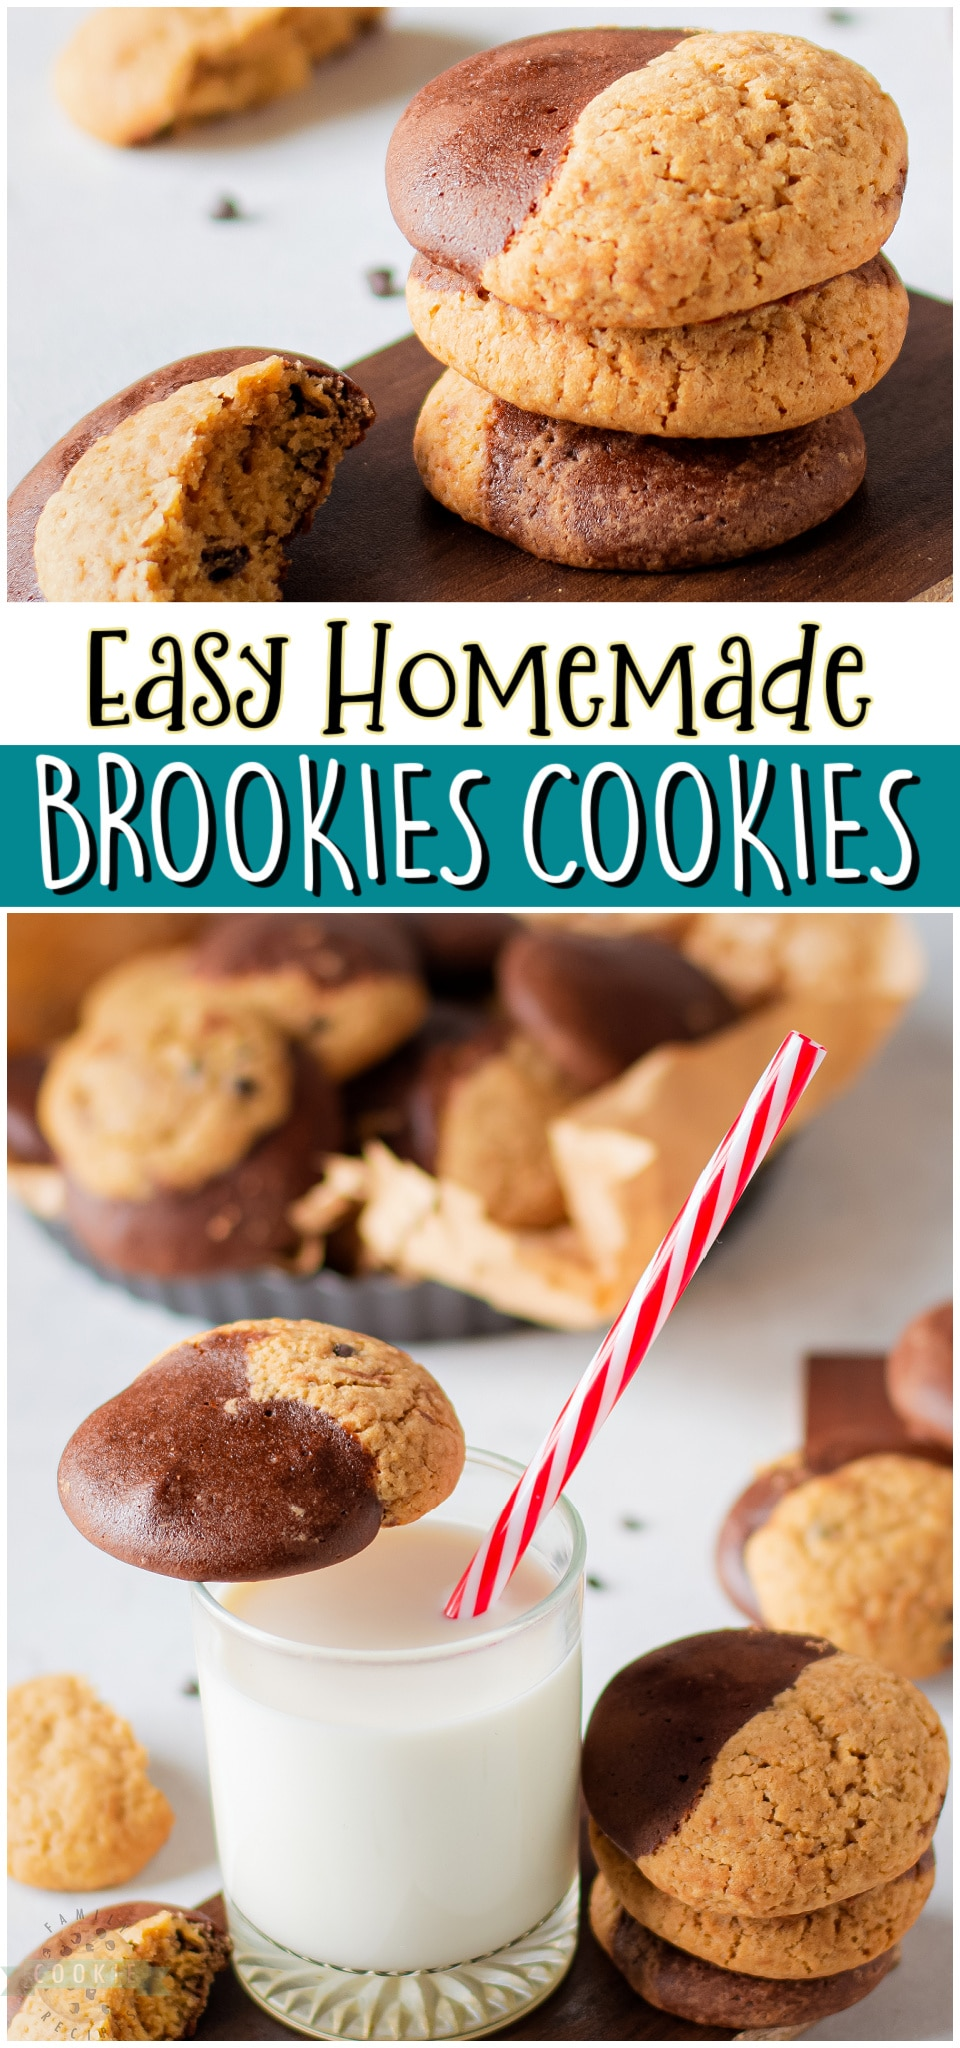 Brookies Cookies are the BEST combination of brownies & chocolate chip cookies! Homemade Brookies with great buttery, chocolate flavor for the perfect dessert!